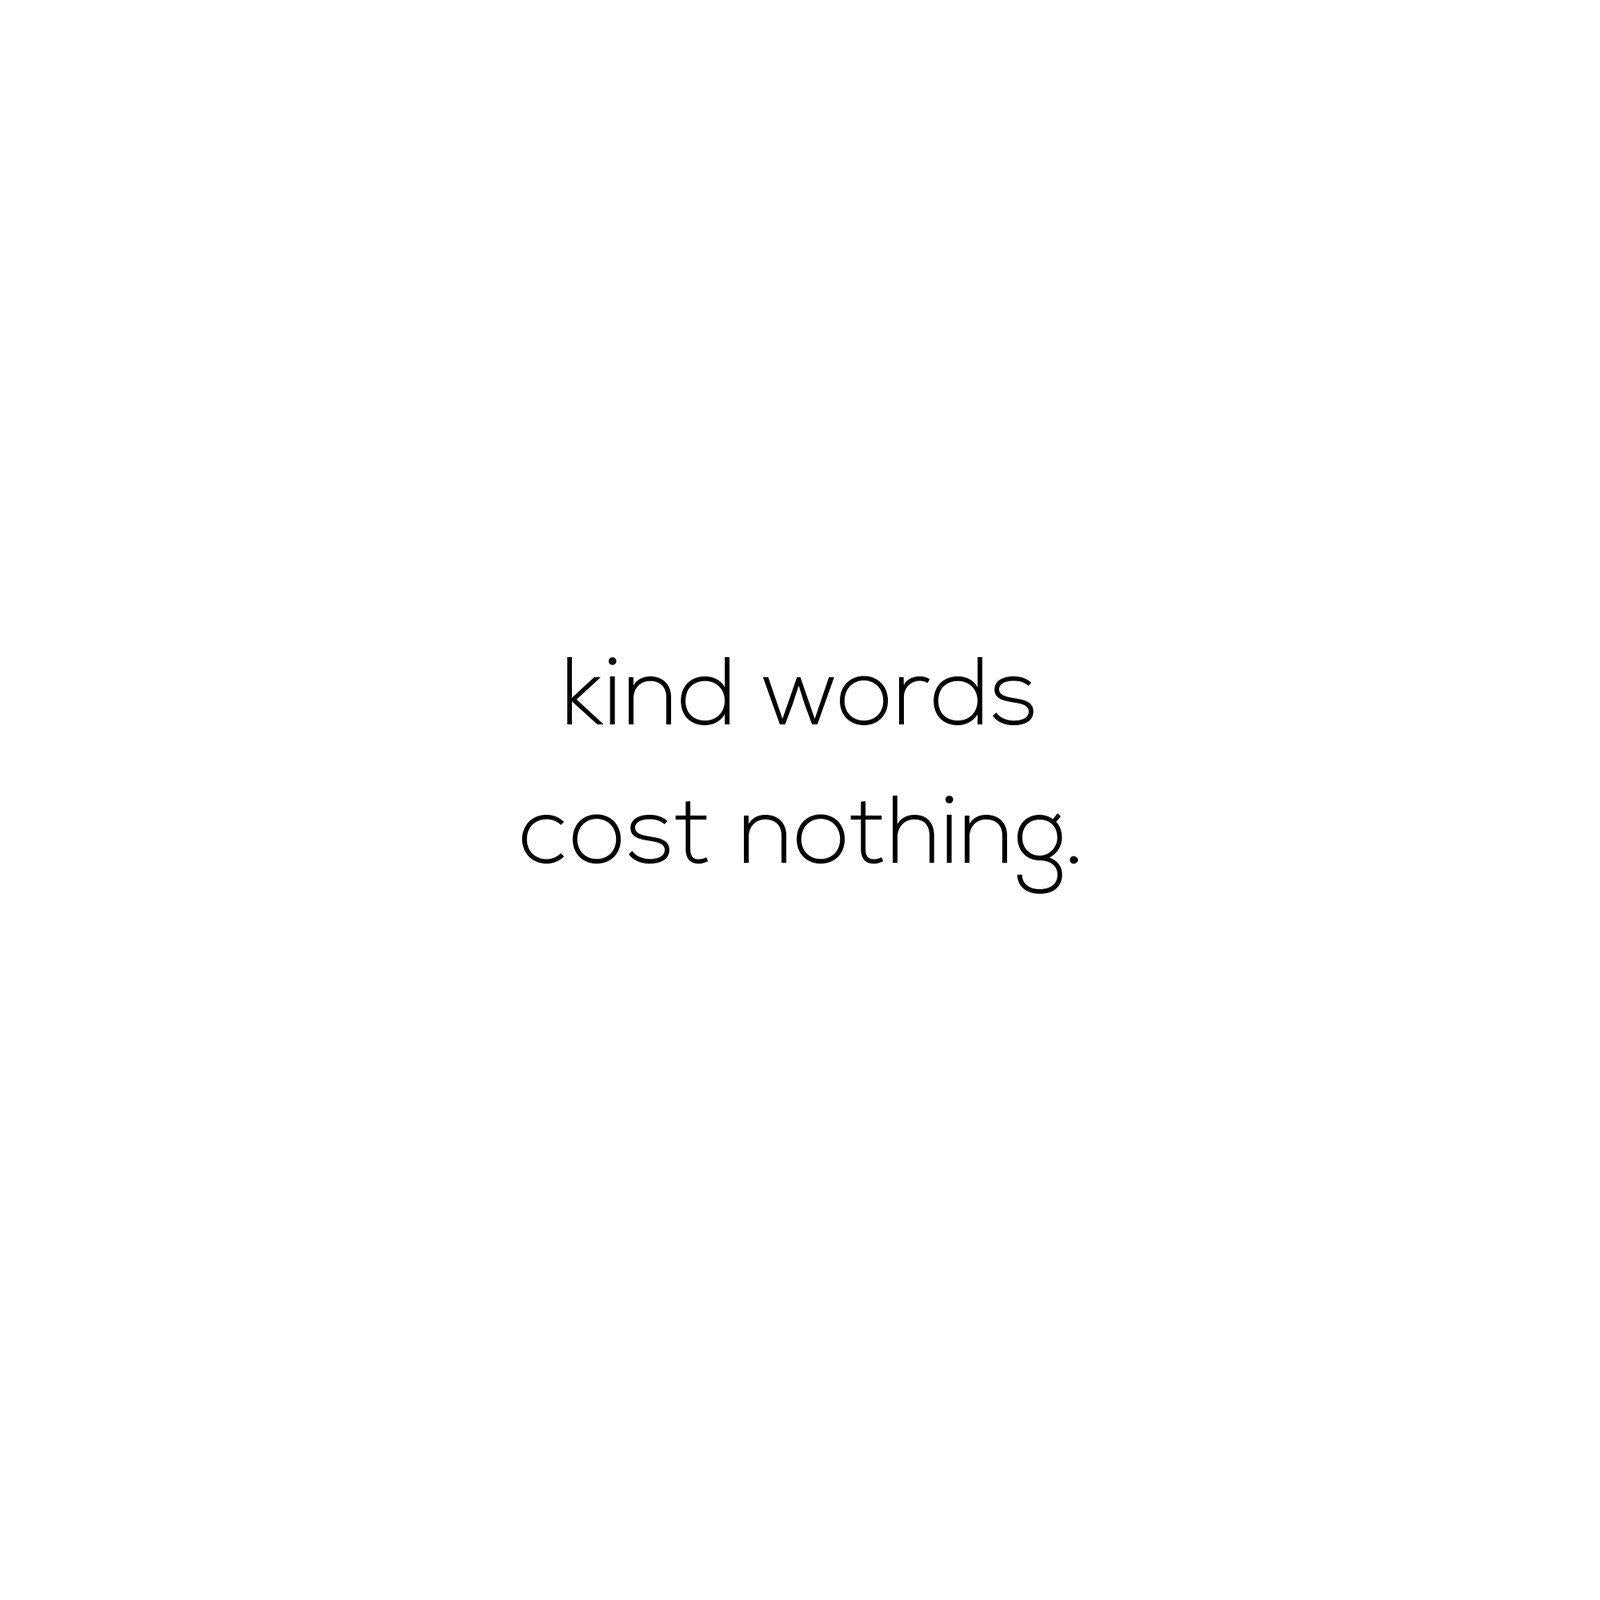 Monday Inspiration - Kind words cost nothing - Netties Expressions